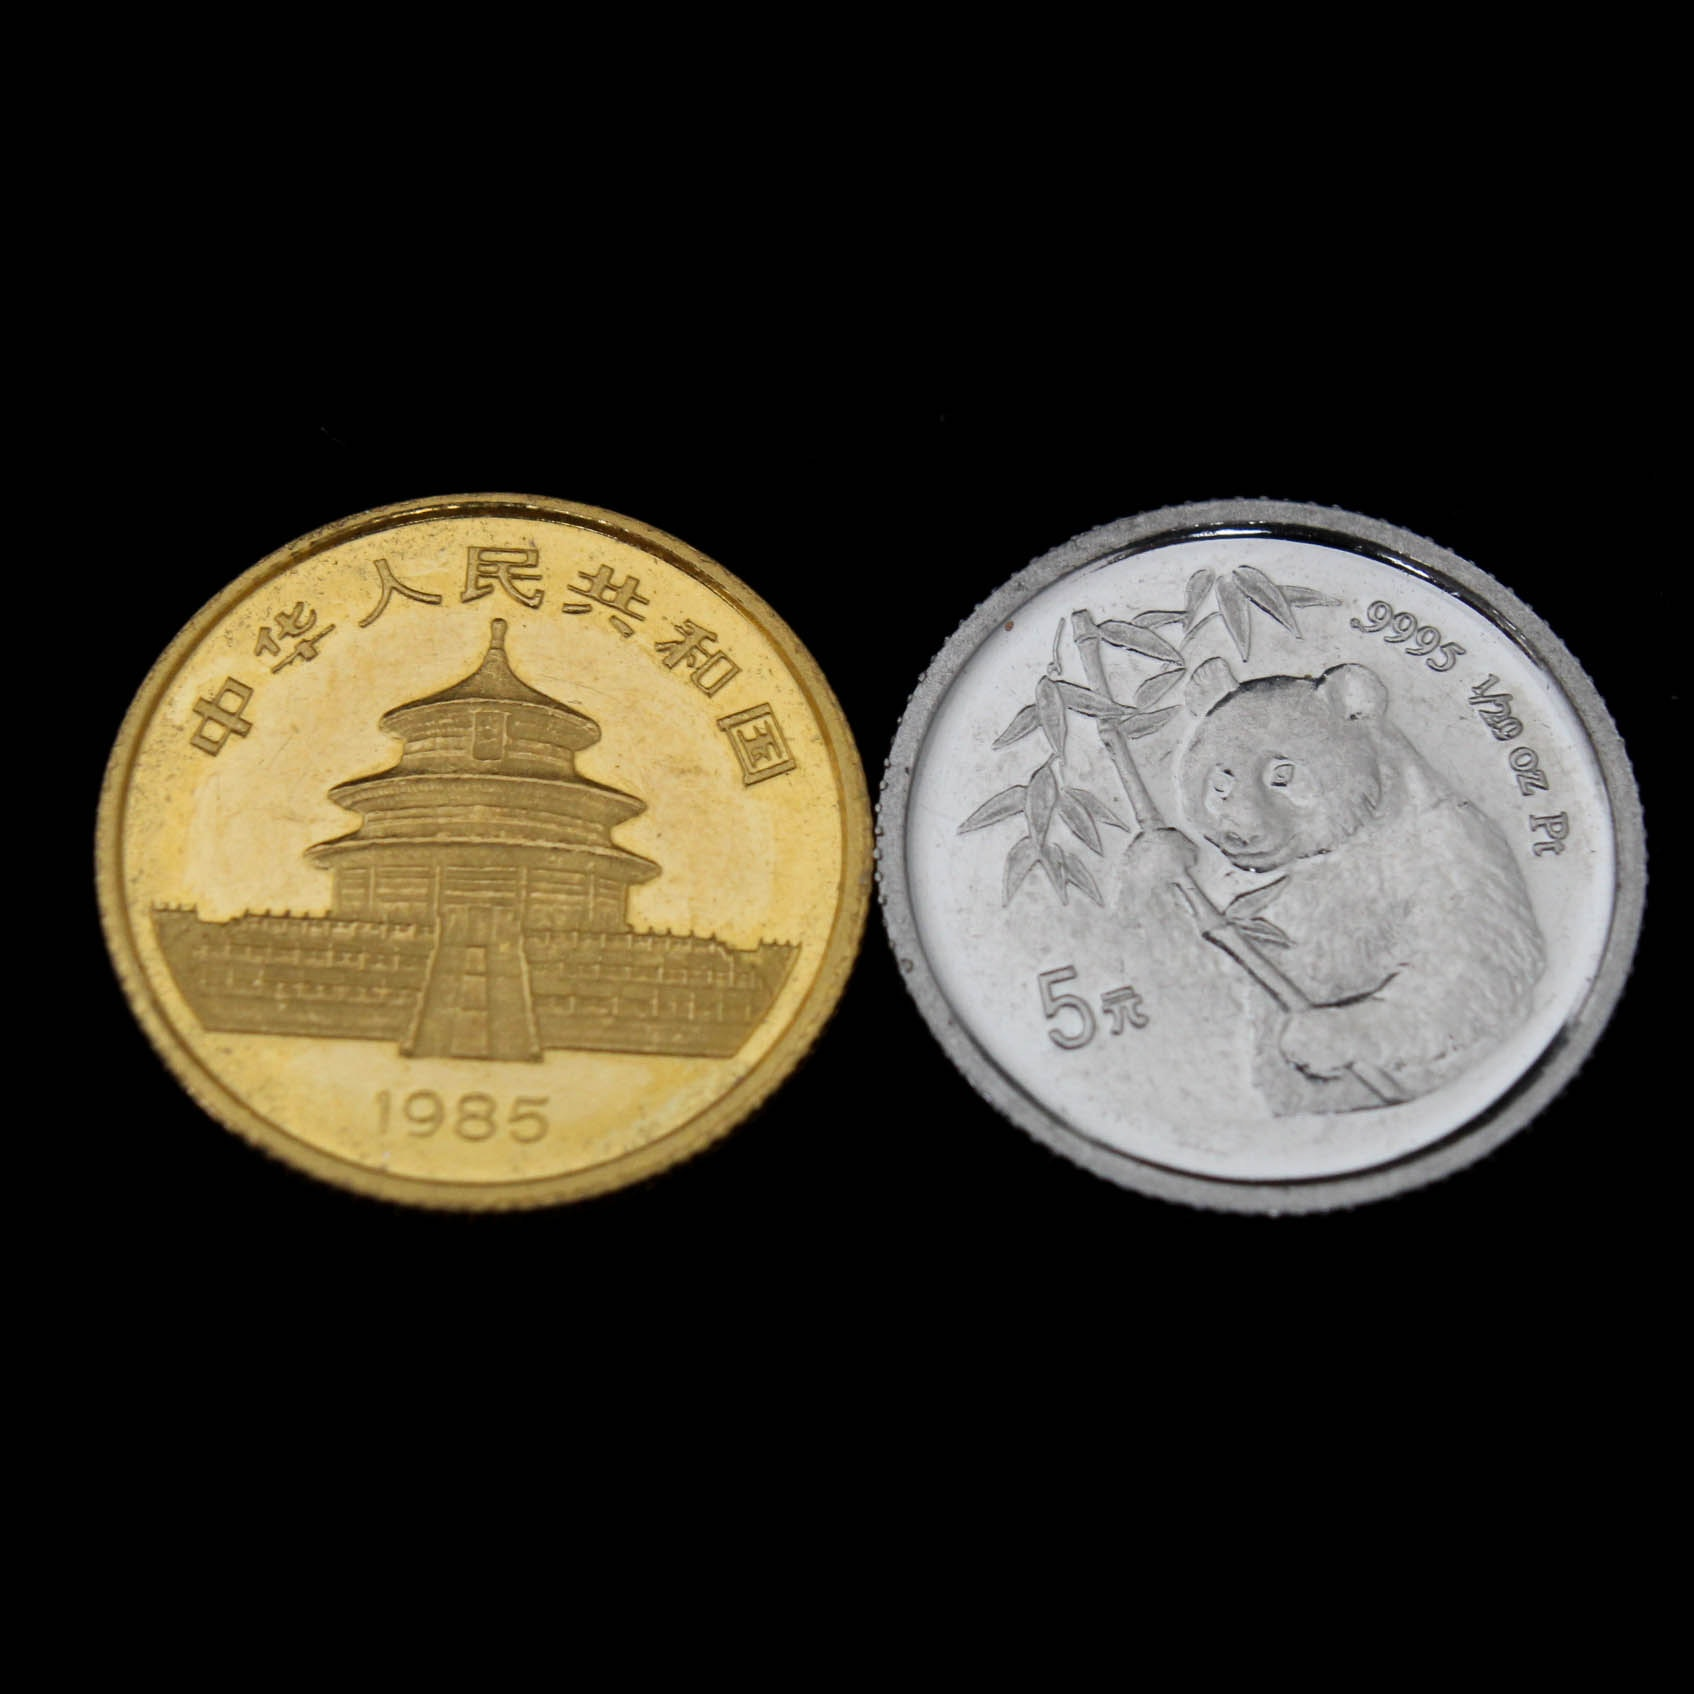 Chinese 1995 Platinum and 1985 Gold 5 Yuan Coins